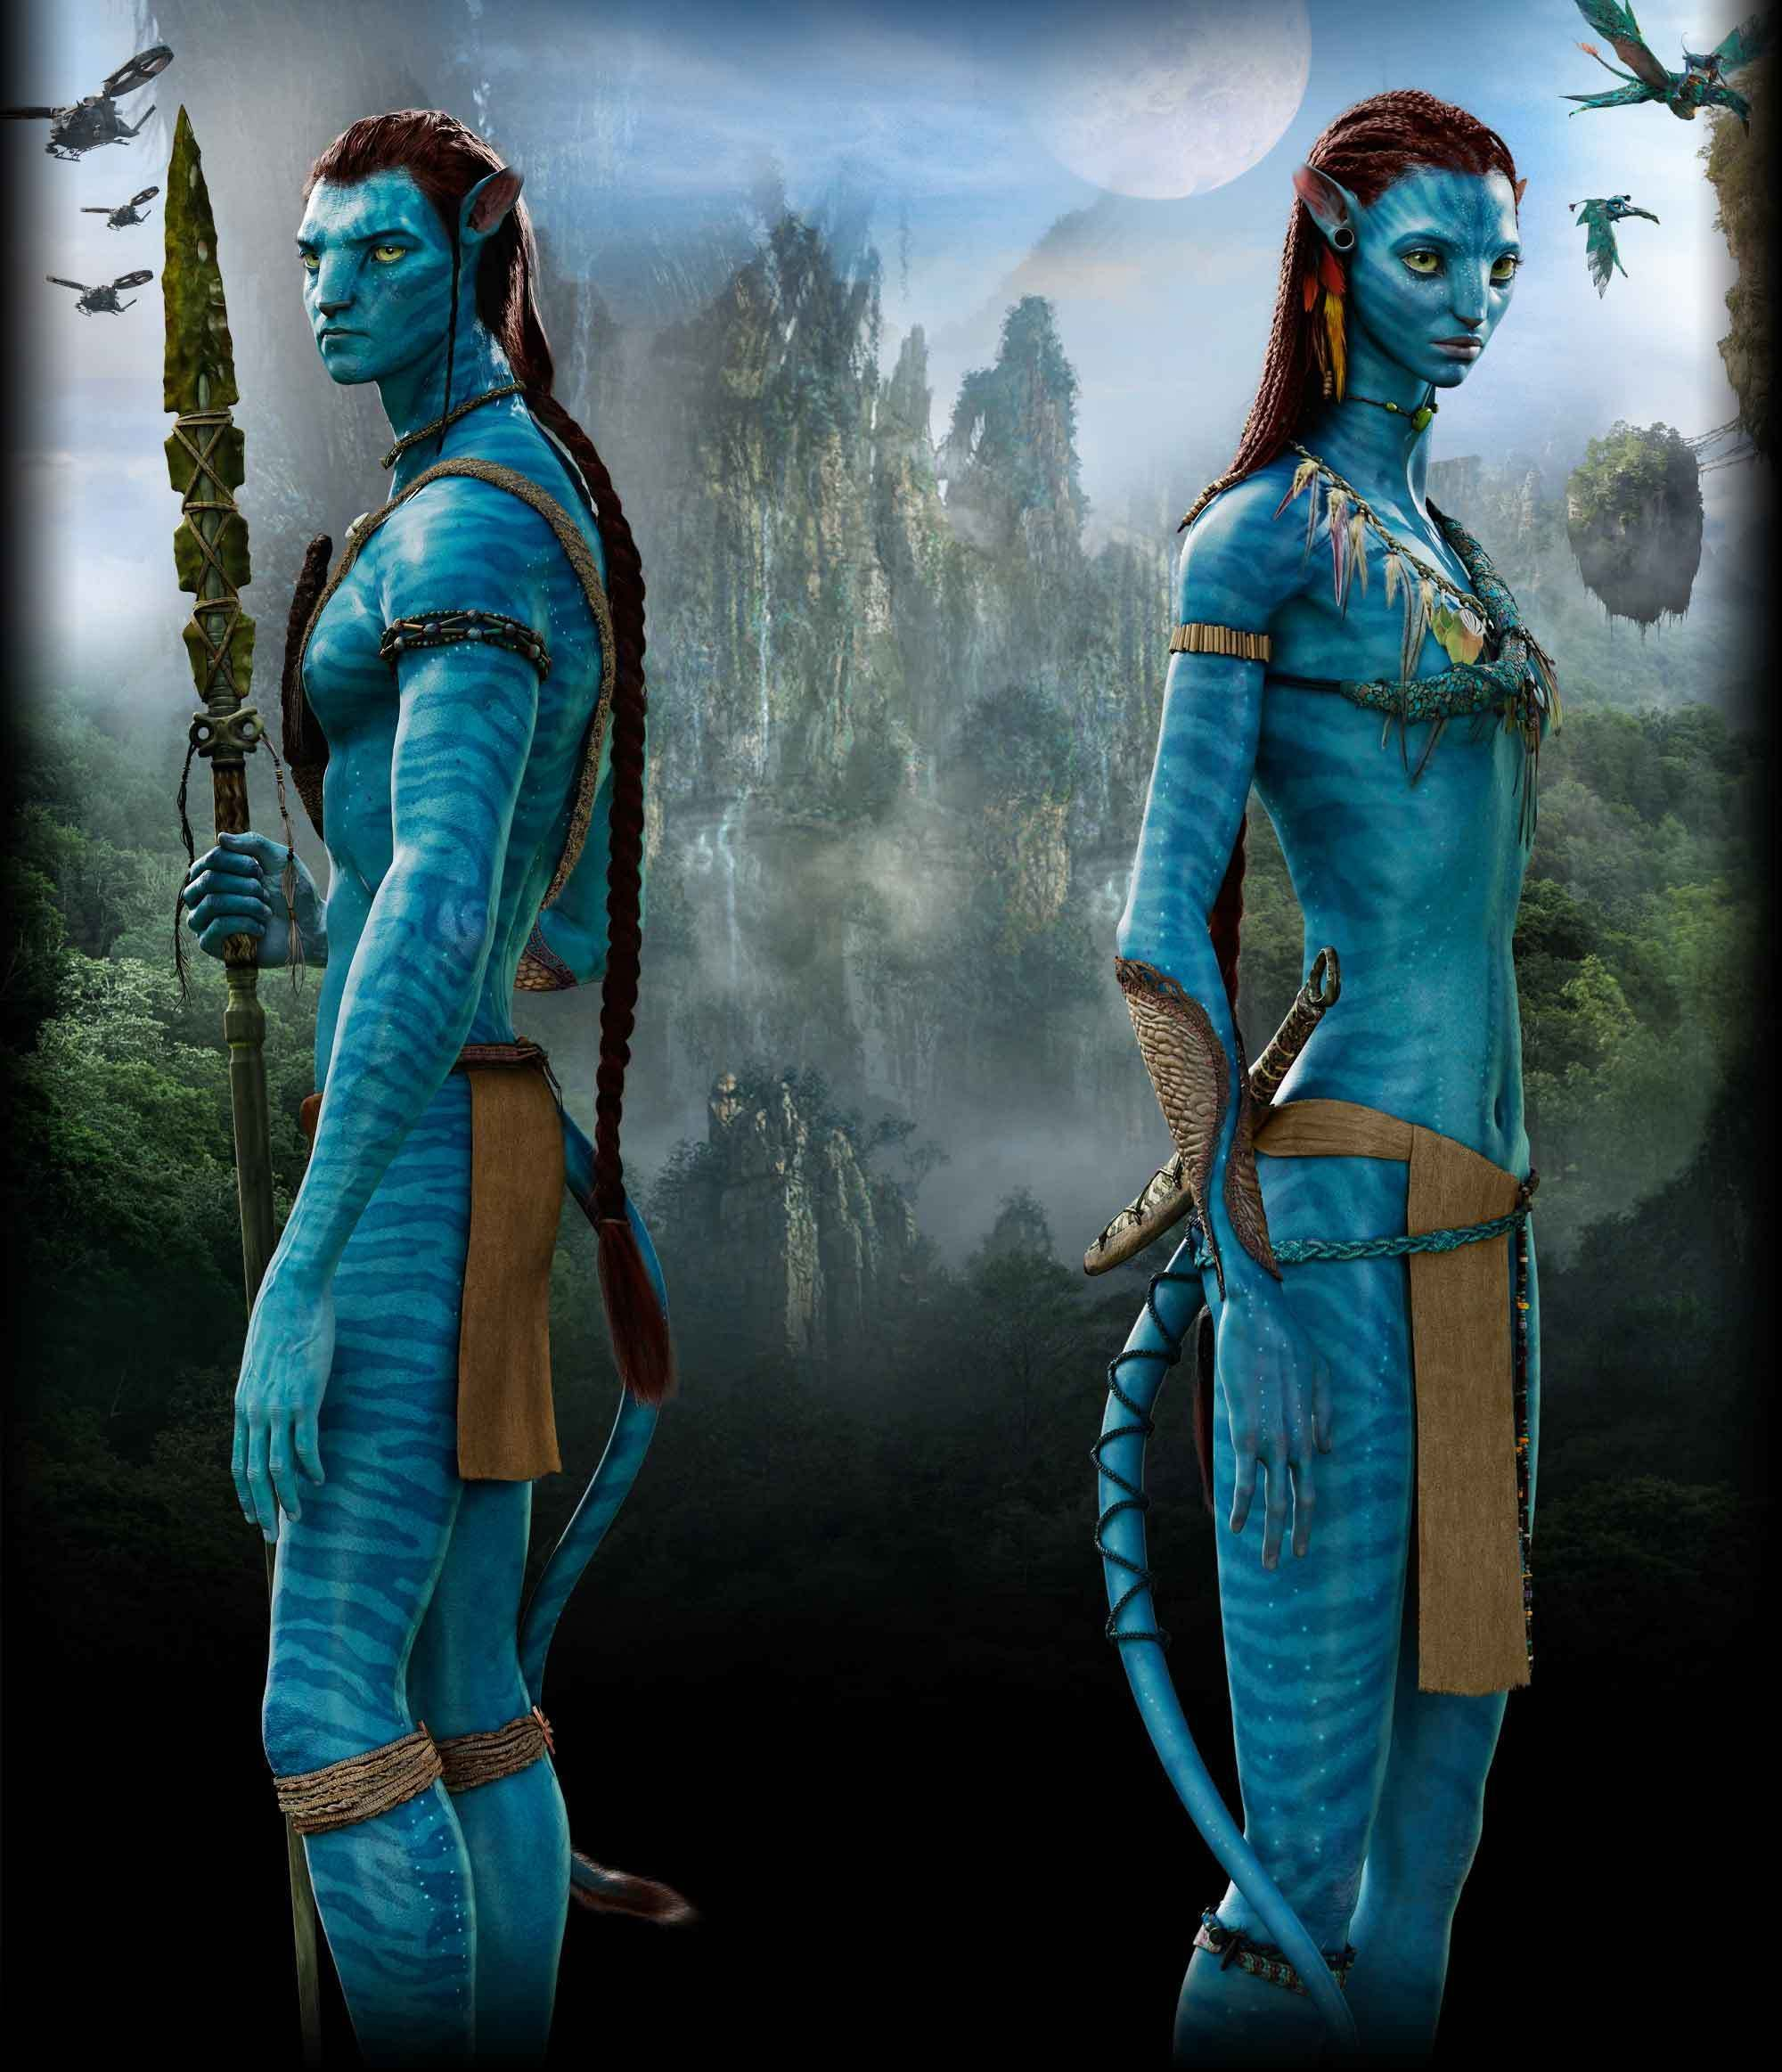 108 Best Avatar The Movie Images On Pinterest: Avatar Pics - Google Search